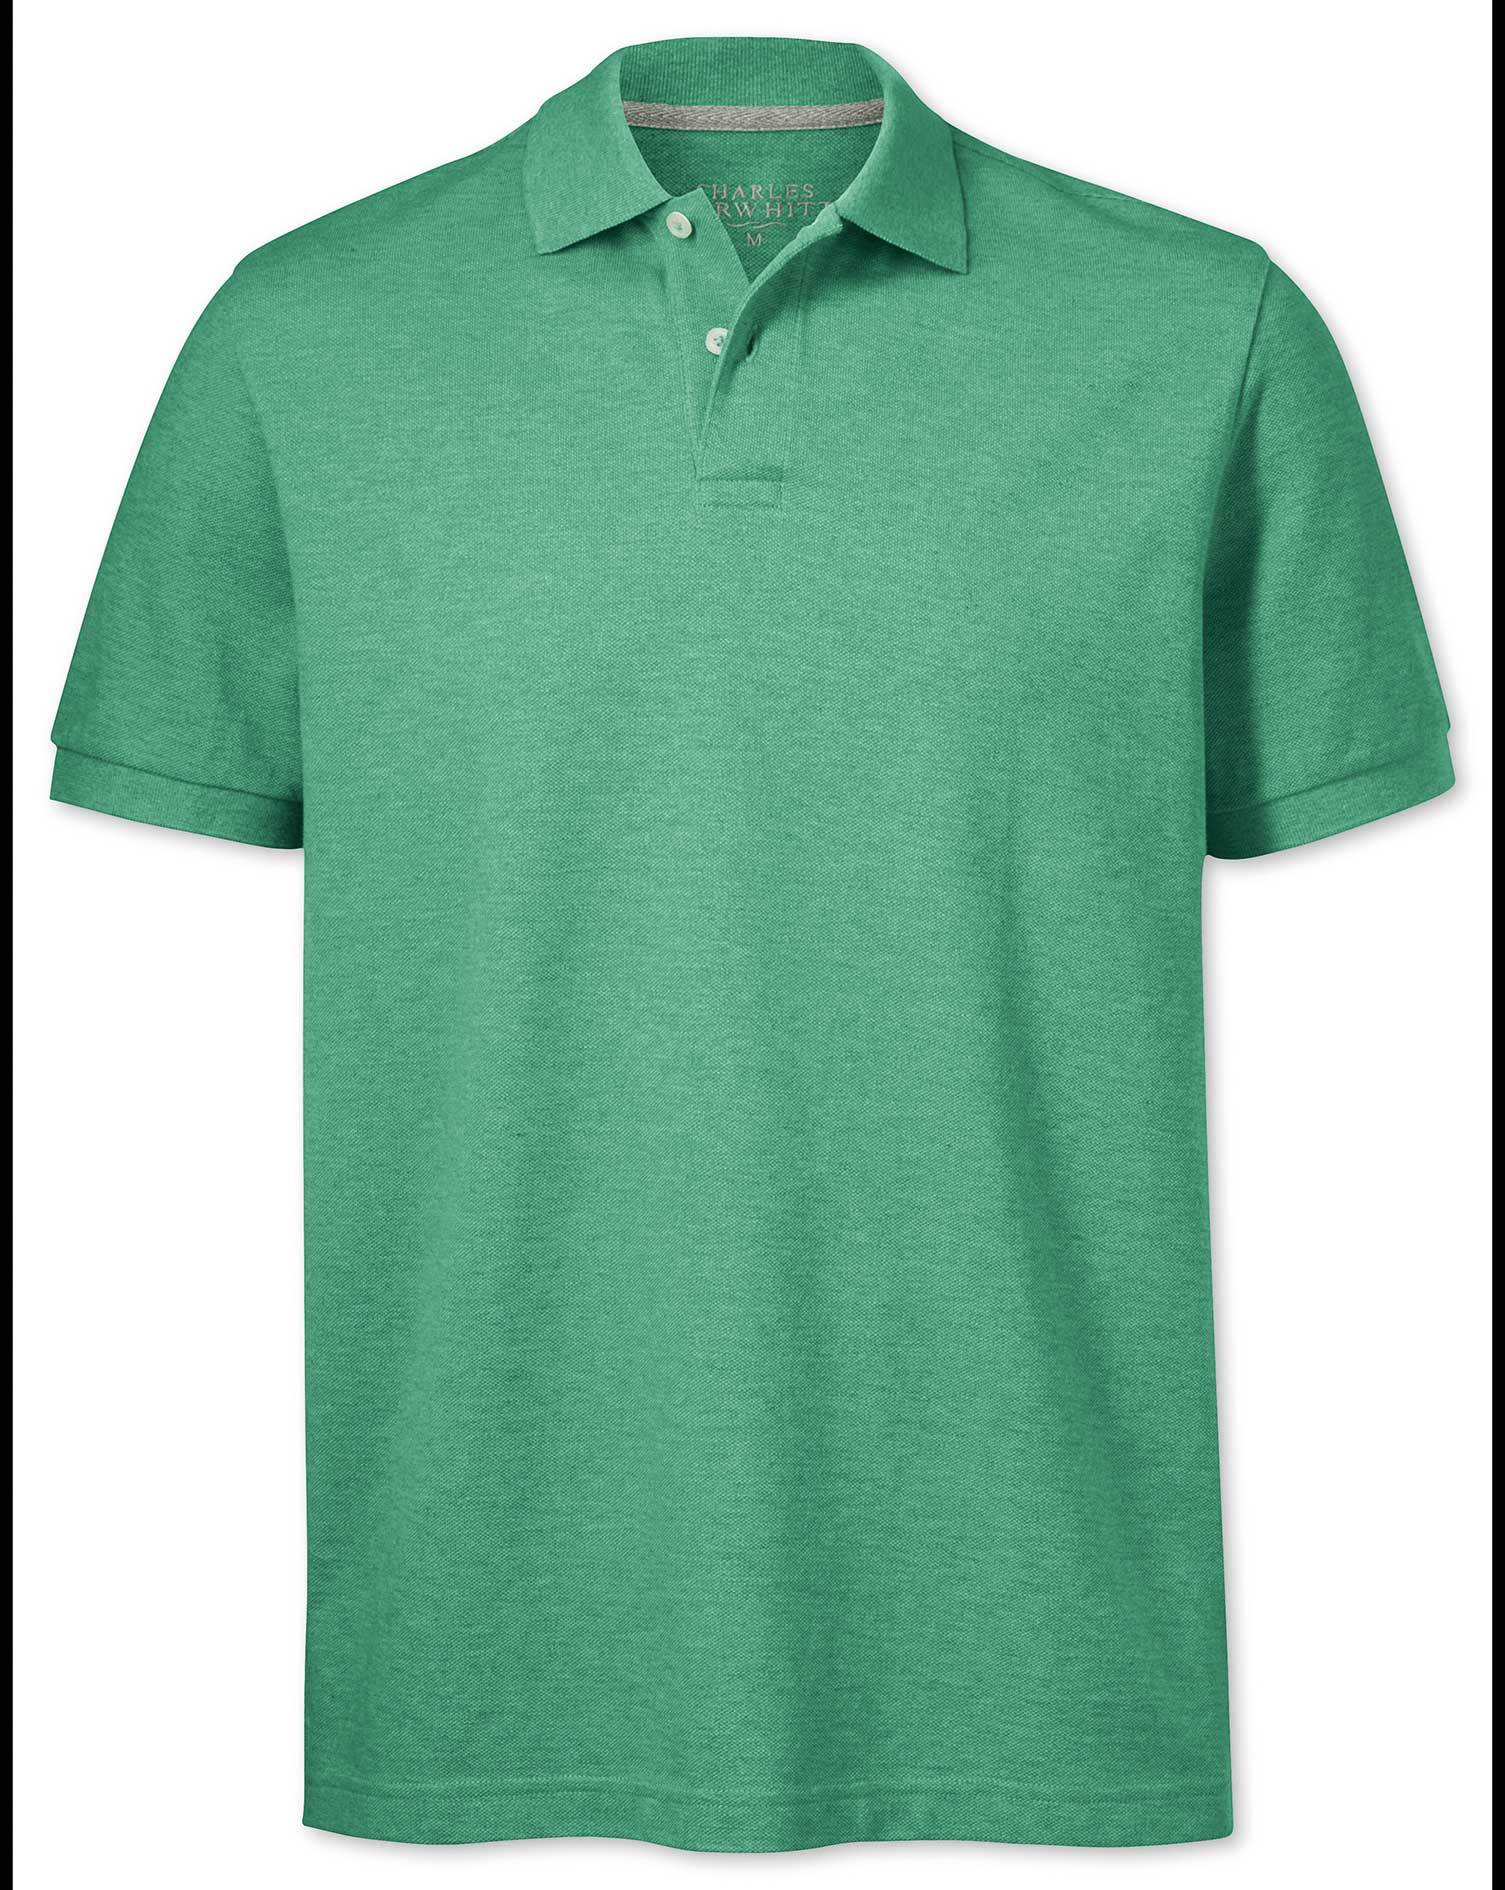 Light Green Pique Cotton Polo Size Large by Charles Tyrwhitt